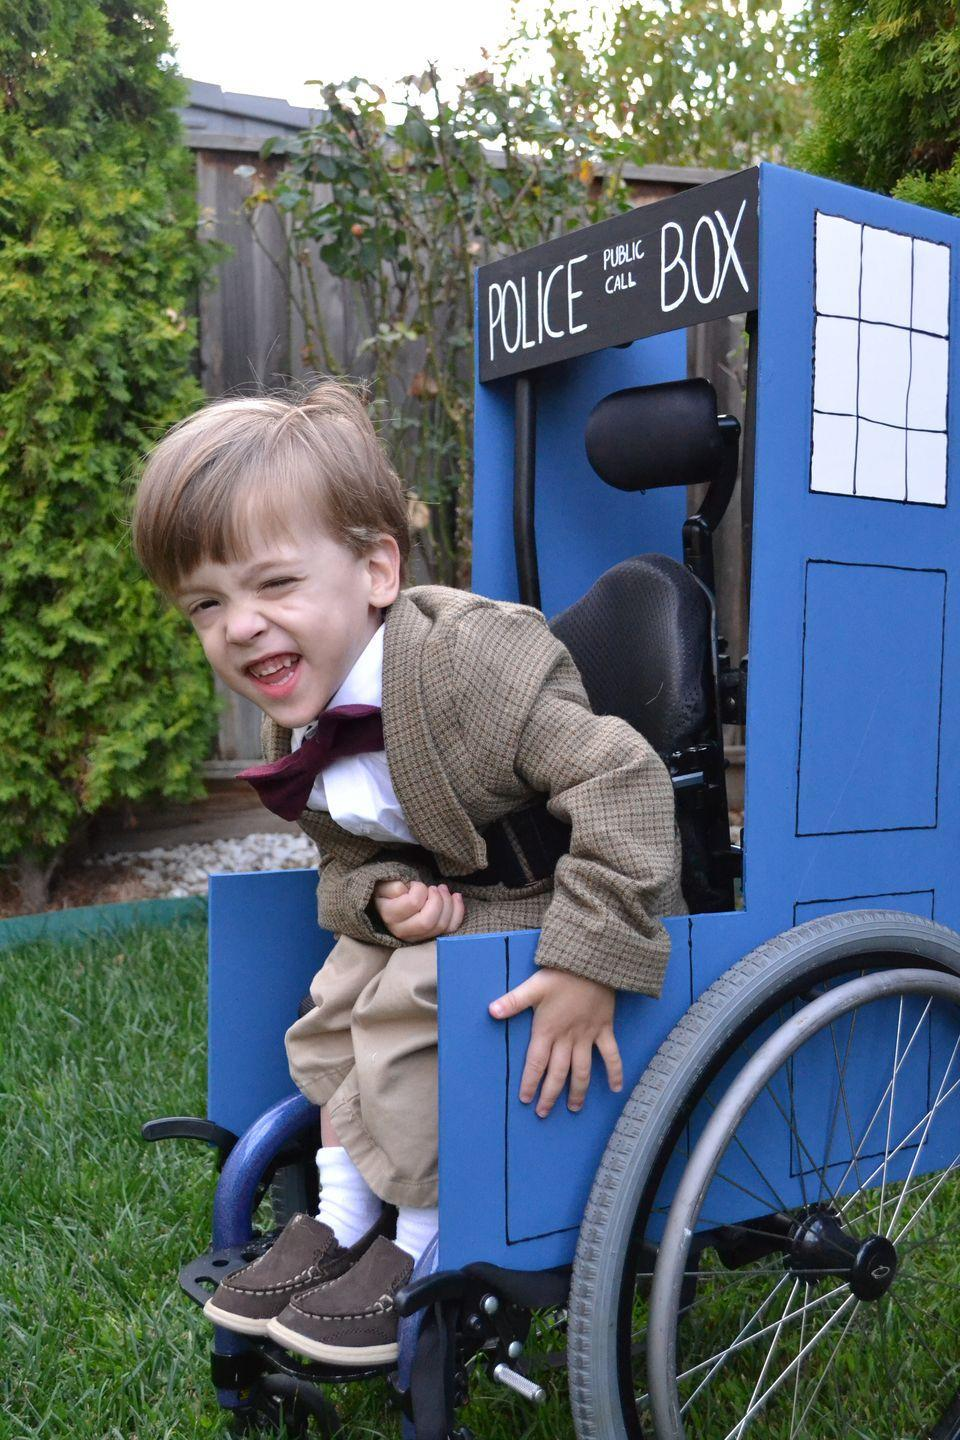 """<p>This Dr. Who costume comes with its very own TARDIS. The Doctor would approve.</p><p><em><a href=""""http://www.reesedixon.com/2011/10/doctor-who-family-halloween-costume.html"""" rel=""""nofollow noopener"""" target=""""_blank"""" data-ylk=""""slk:See more at Reese Dixon »"""" class=""""link rapid-noclick-resp"""">See more at Reese Dixon »</a></em></p>"""